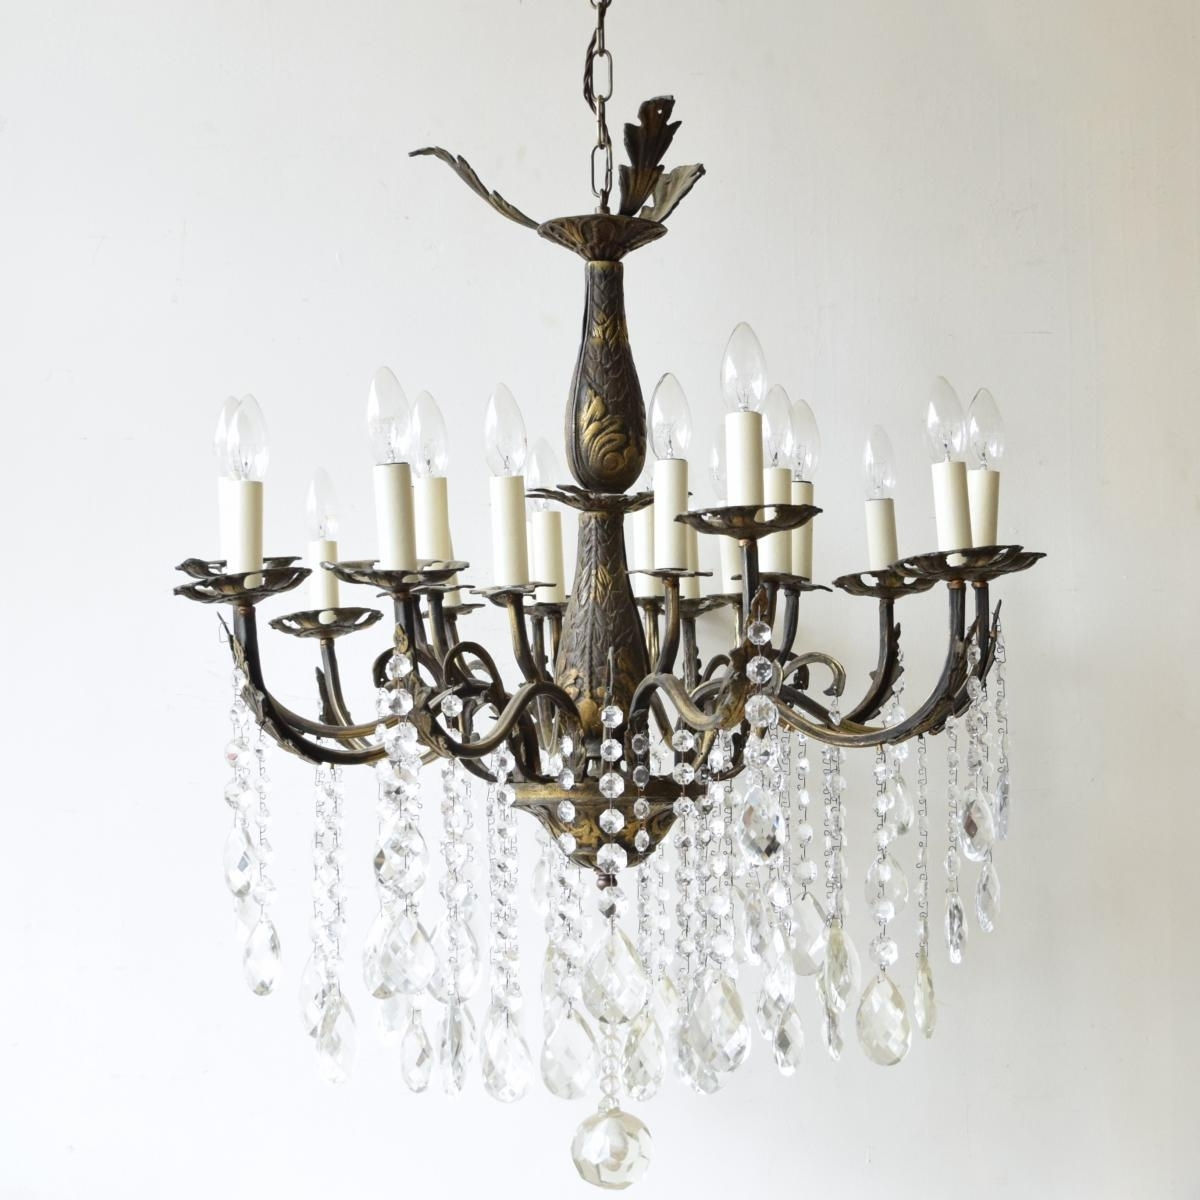 Large Vintage French 16 Light Brass Chandelier For Sale At Pamono With Popular Vintage Brass Chandeliers (View 2 of 15)